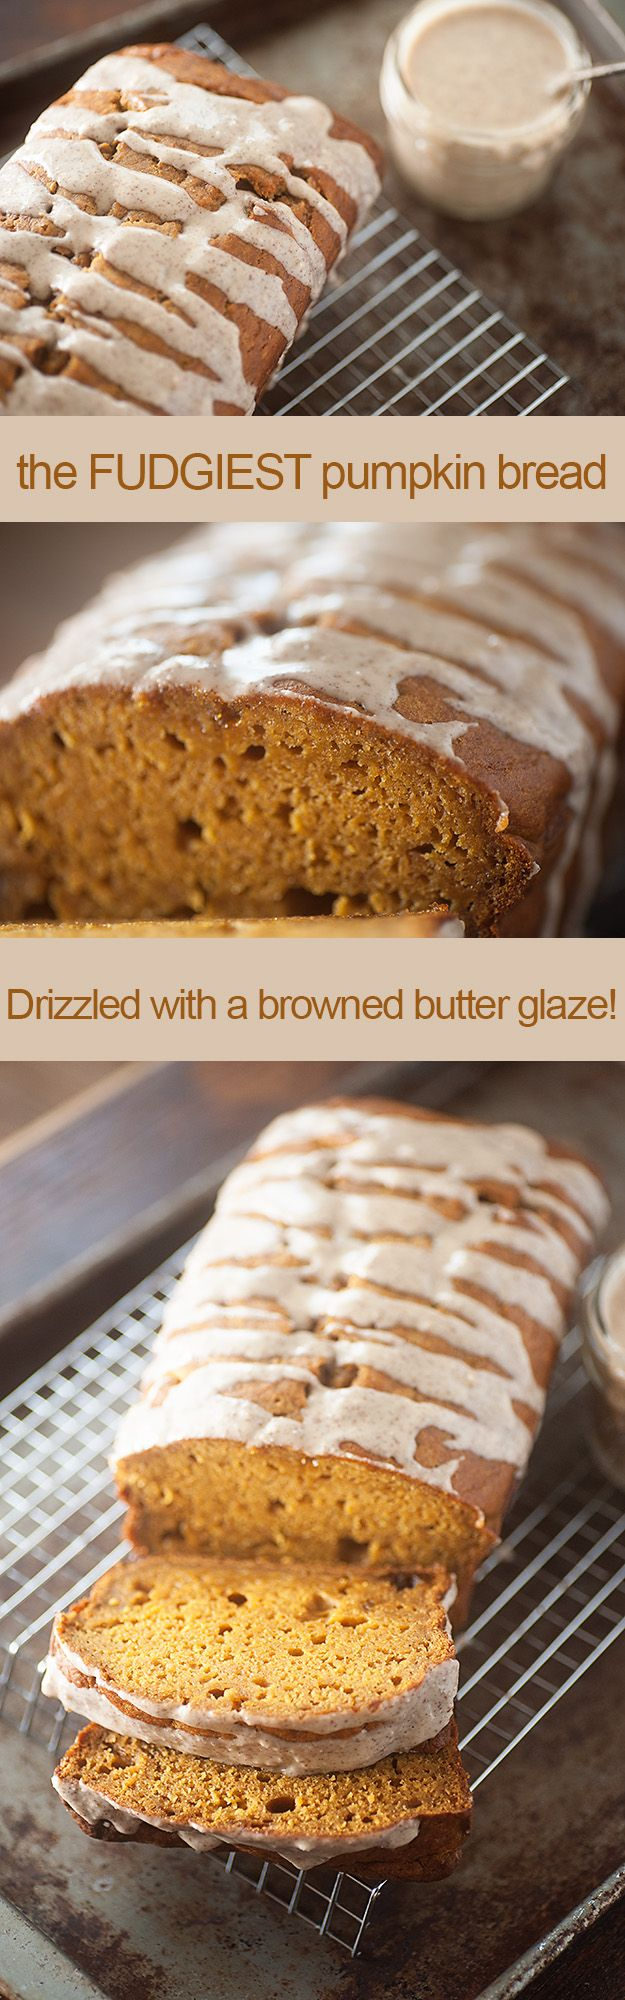 Pumpkin Bread With Browned Butter Drizzle Super moist and fudgy pumpkin bread recipe! This is THE BEST pumpkin bread recipe I've ever had!